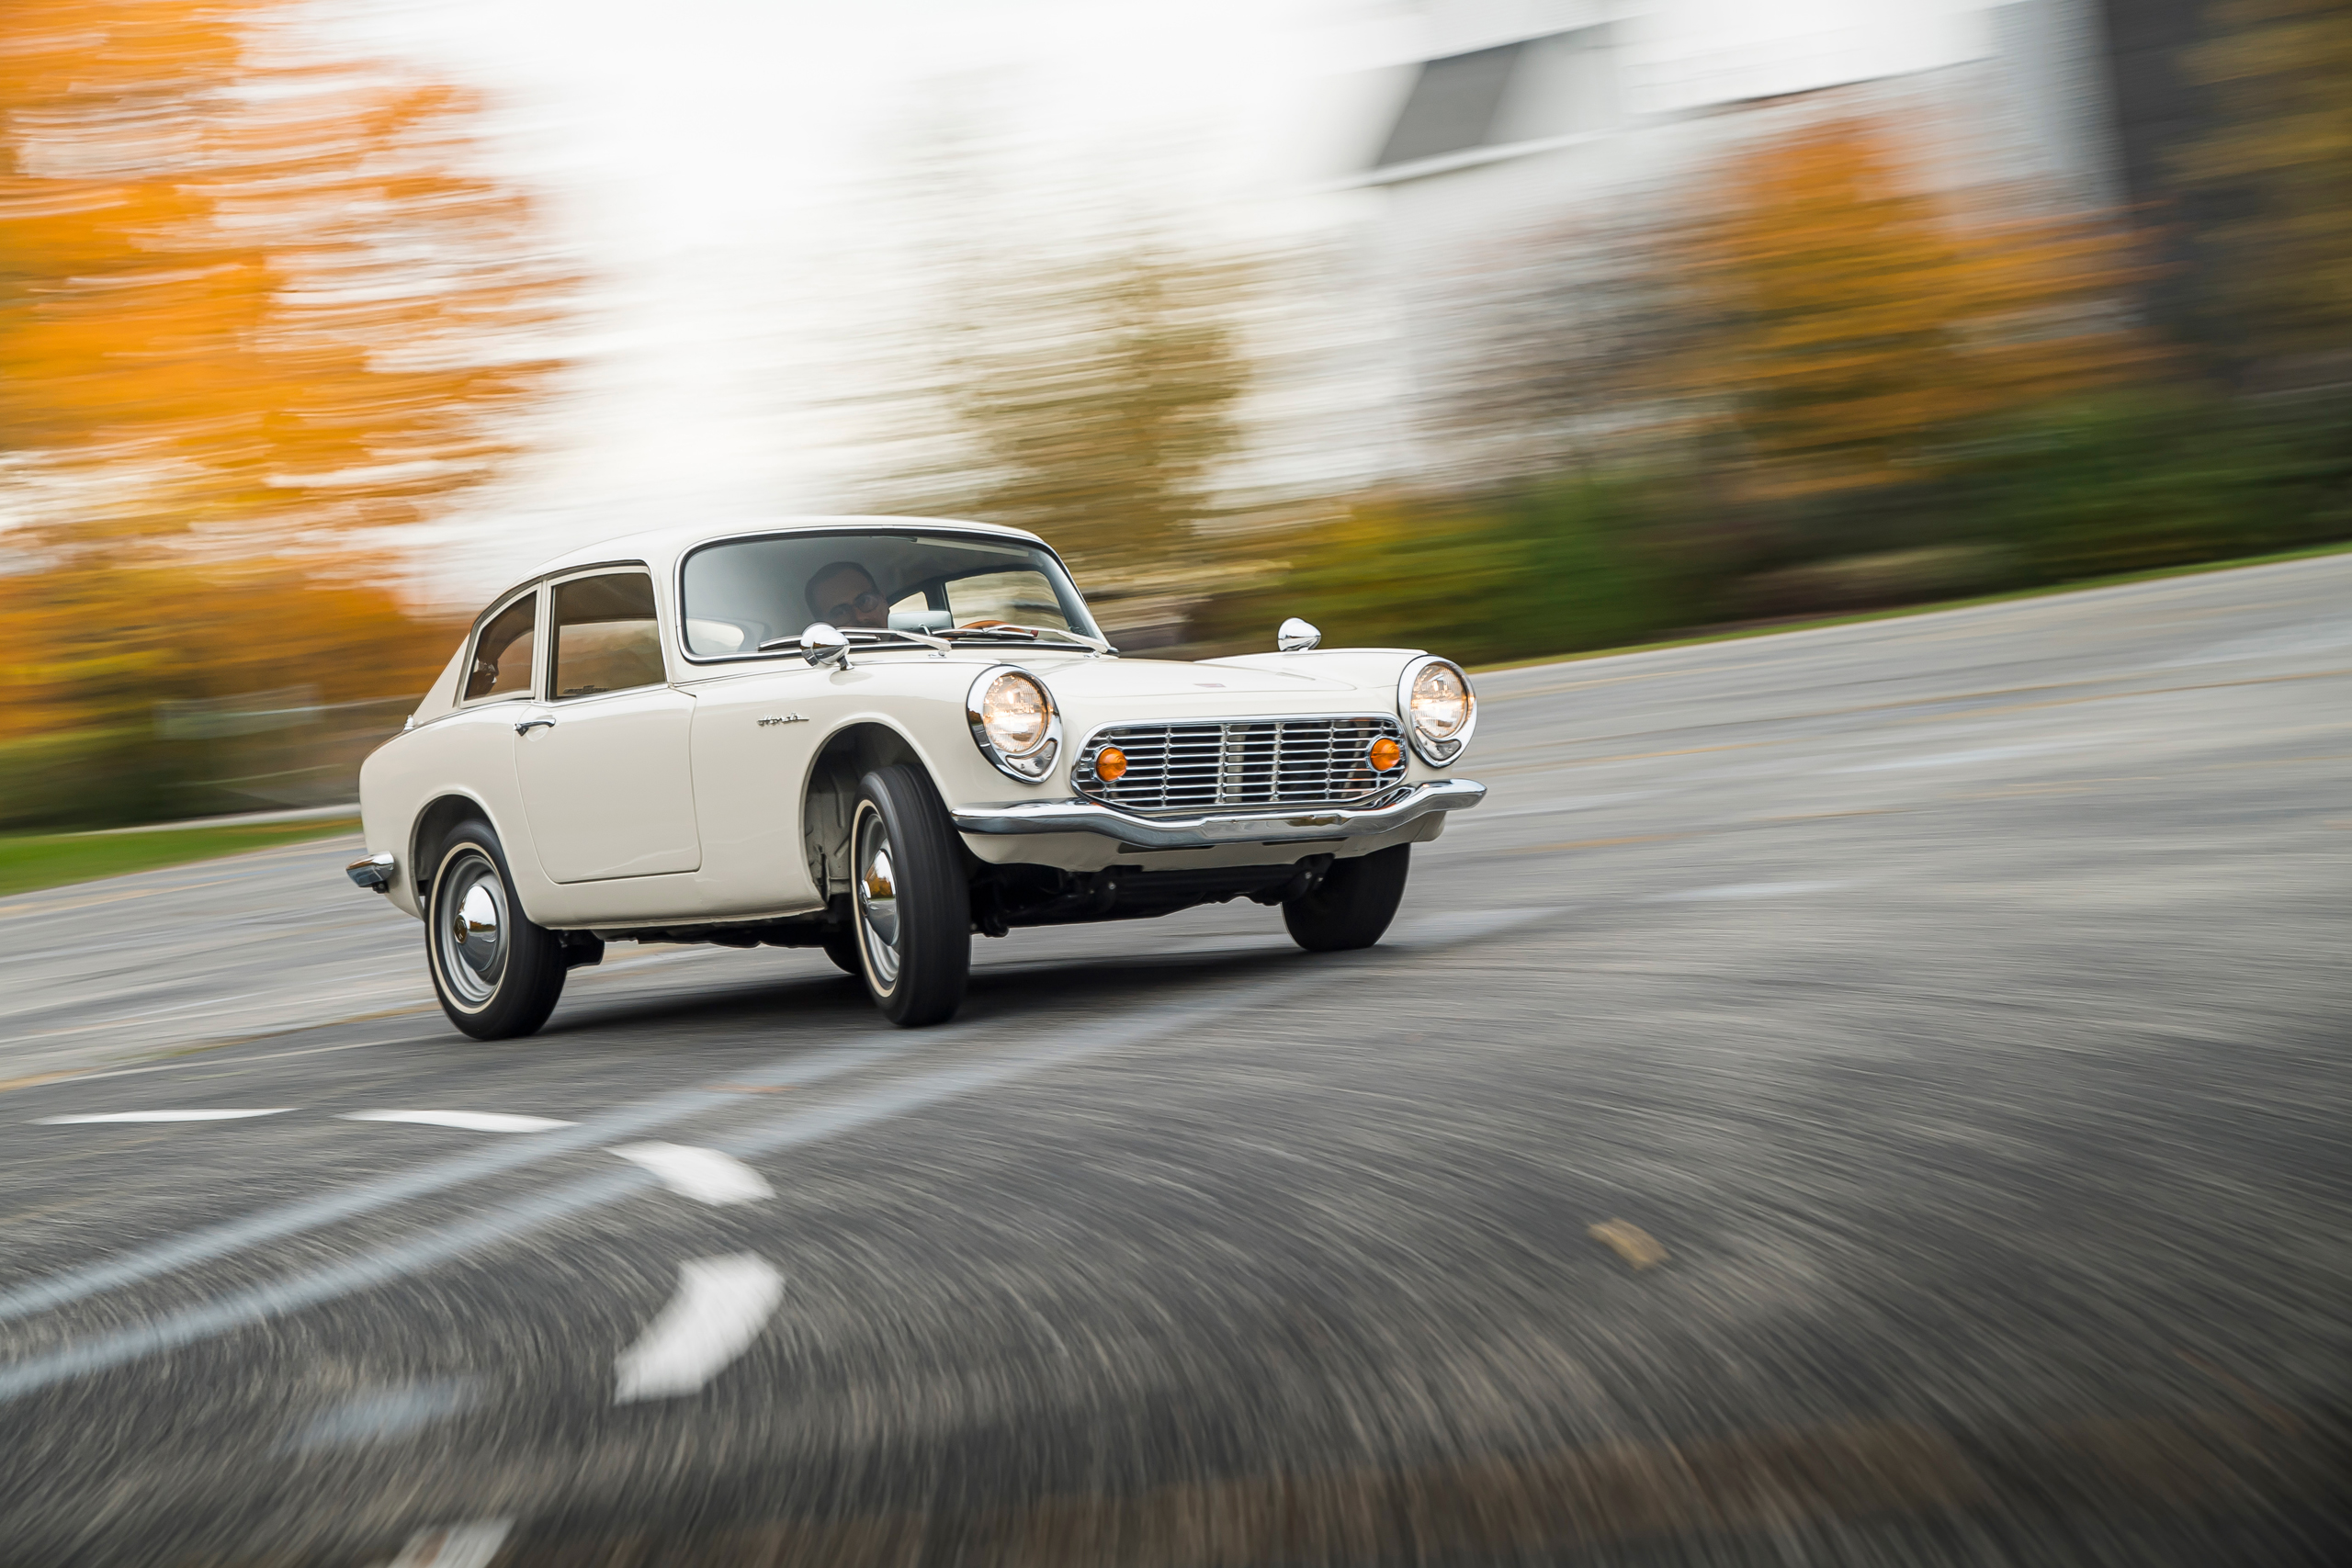 Honda S600 front three-quarter